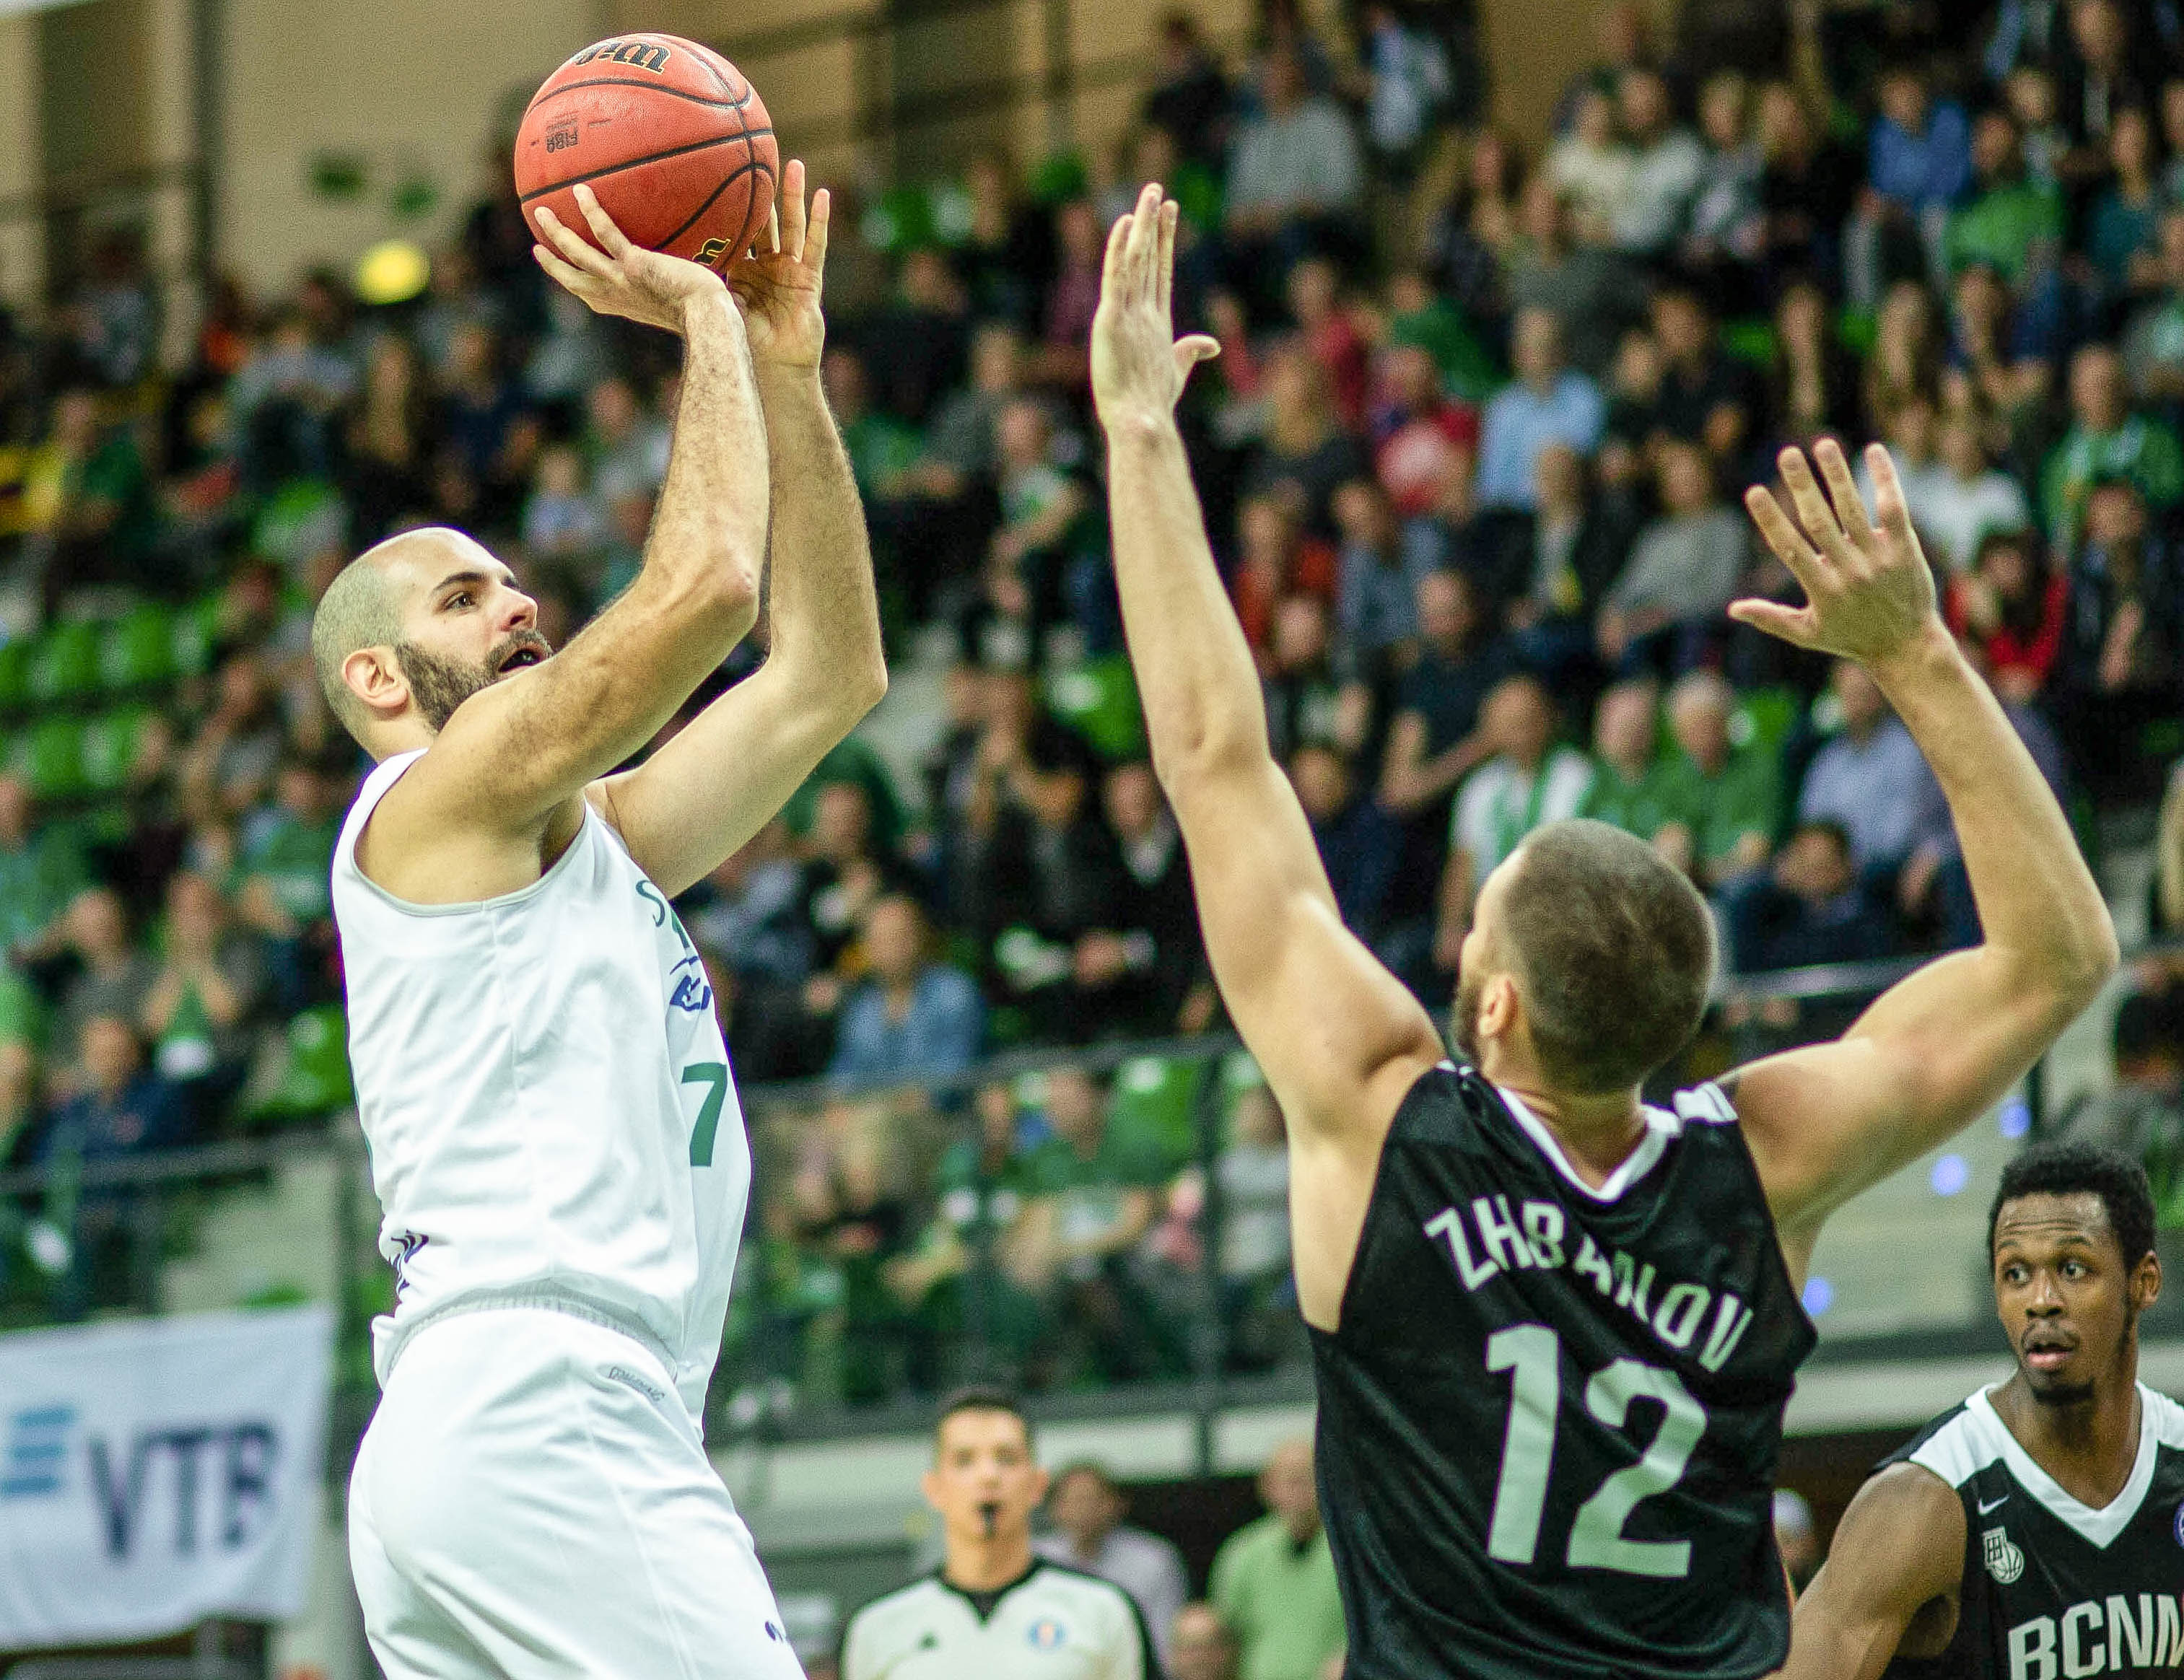 Zielona Gora Storms Back For 1st Home Win